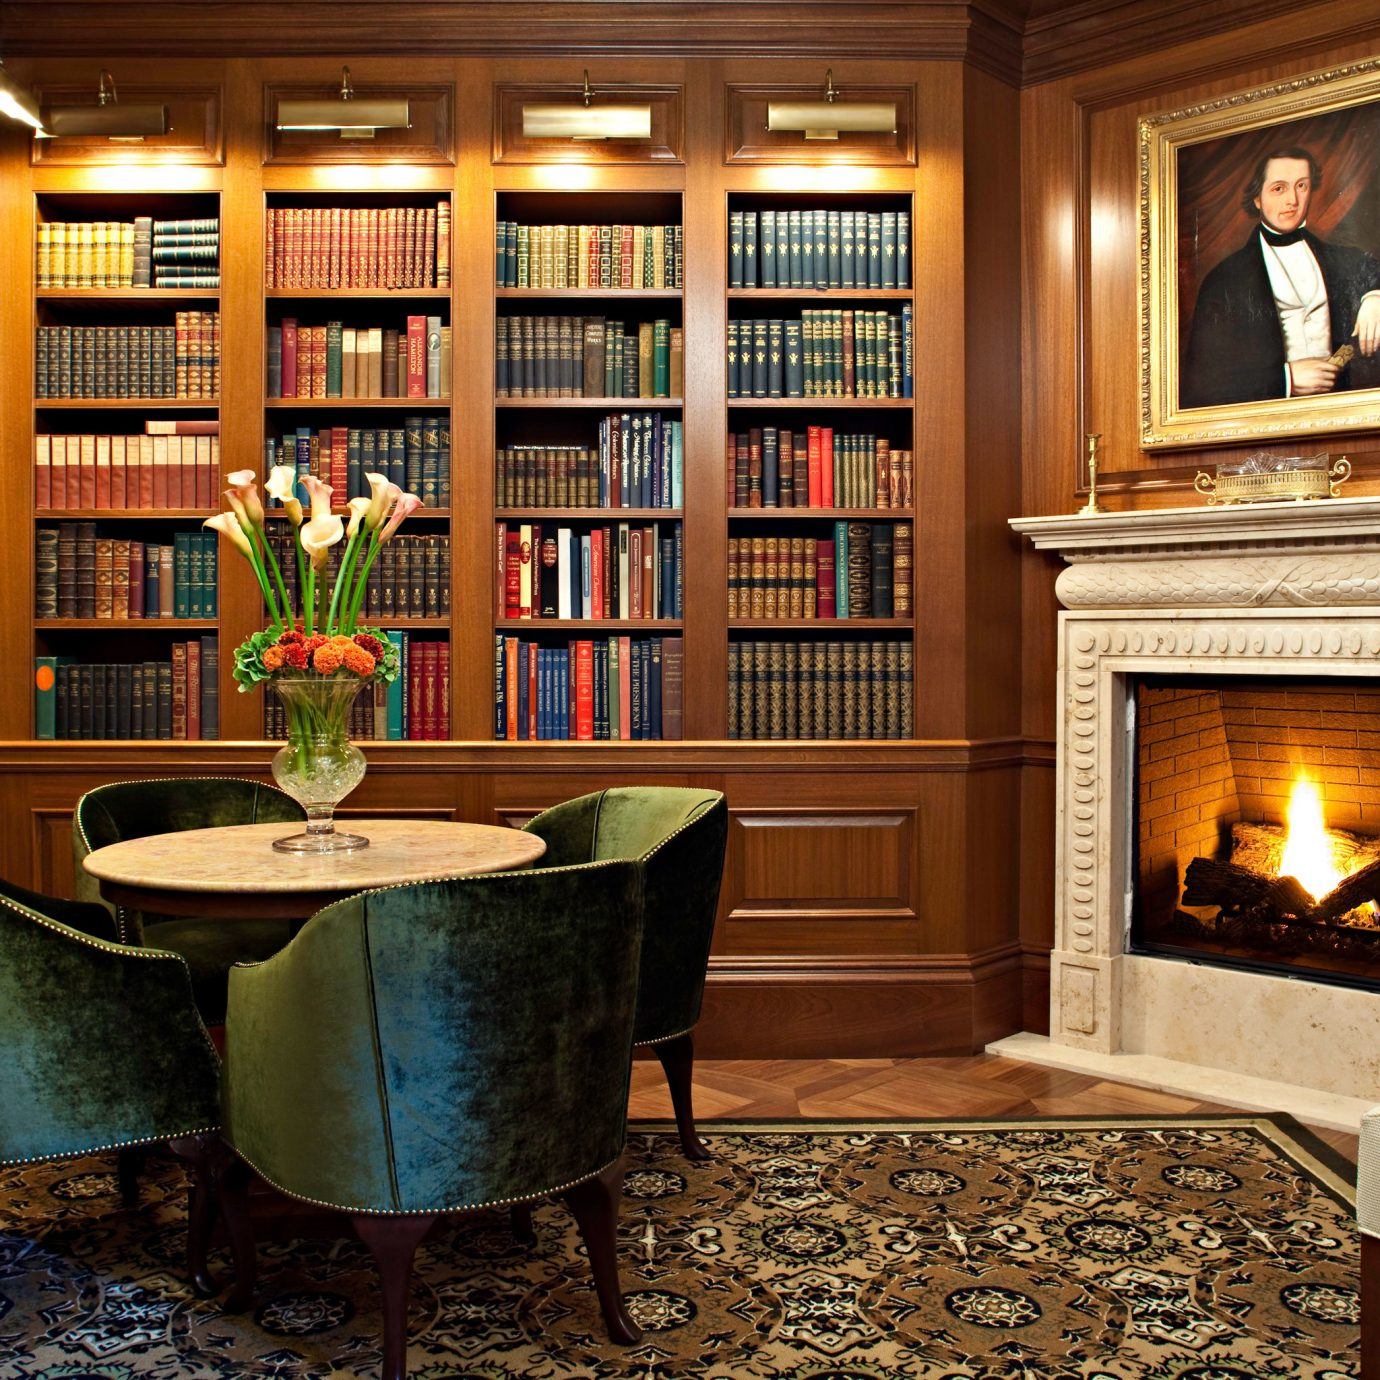 Boutique Hotels Fireplace Hotels Lounge chair home living room cabinetry shelf hardwood mansion